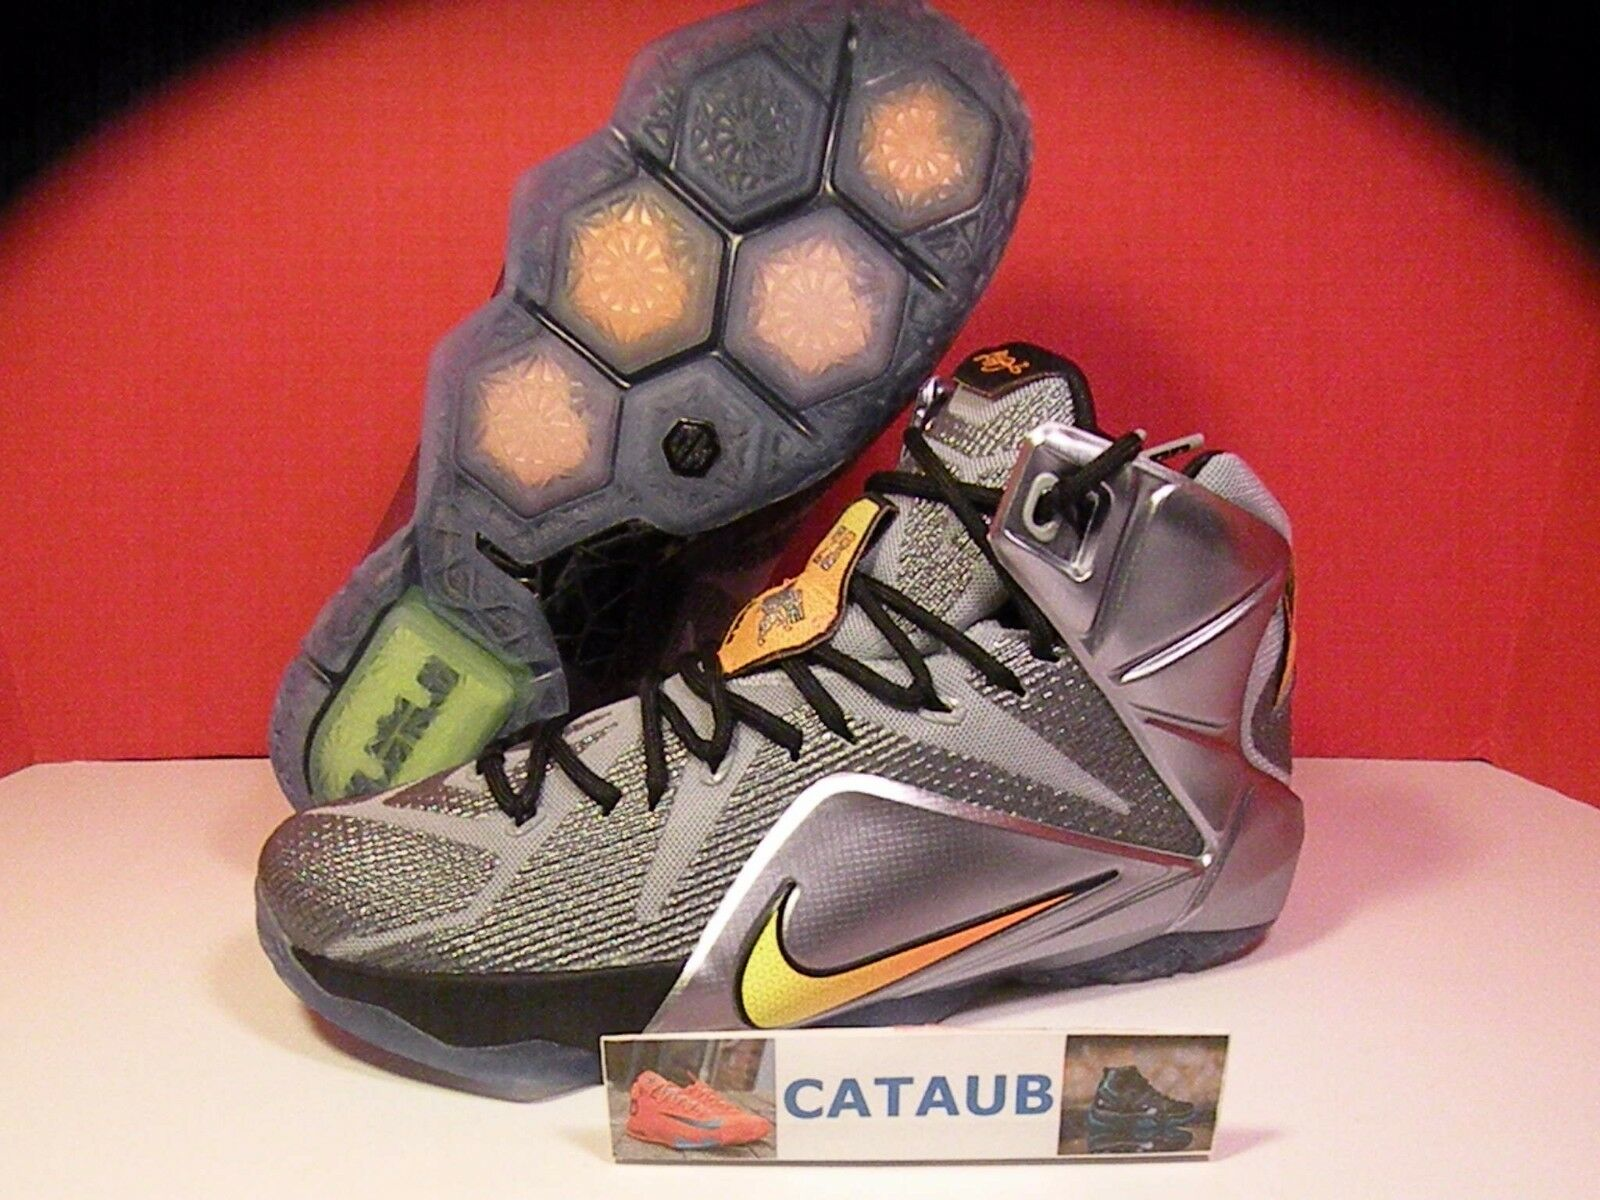 Nike LeBron XII 12 Flight Pack Wolf Grey Citrus Black SZ (9.5-12) (684593-080)